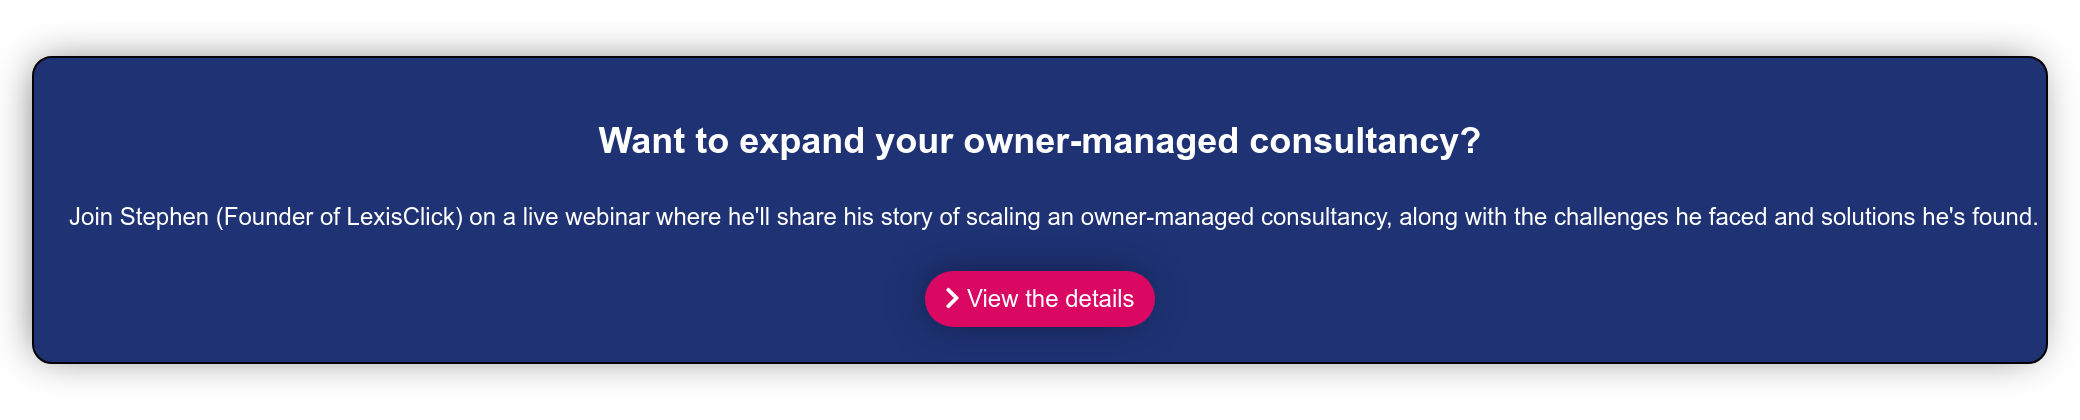 Want to expand your owner-managed consultancy?  Join Stephen (Founder of LexisClick) on a live webinar where he'll share his  story of scaling an owner-managed consultancy, along with the challenges he  faced and solutions he's found.    View the details